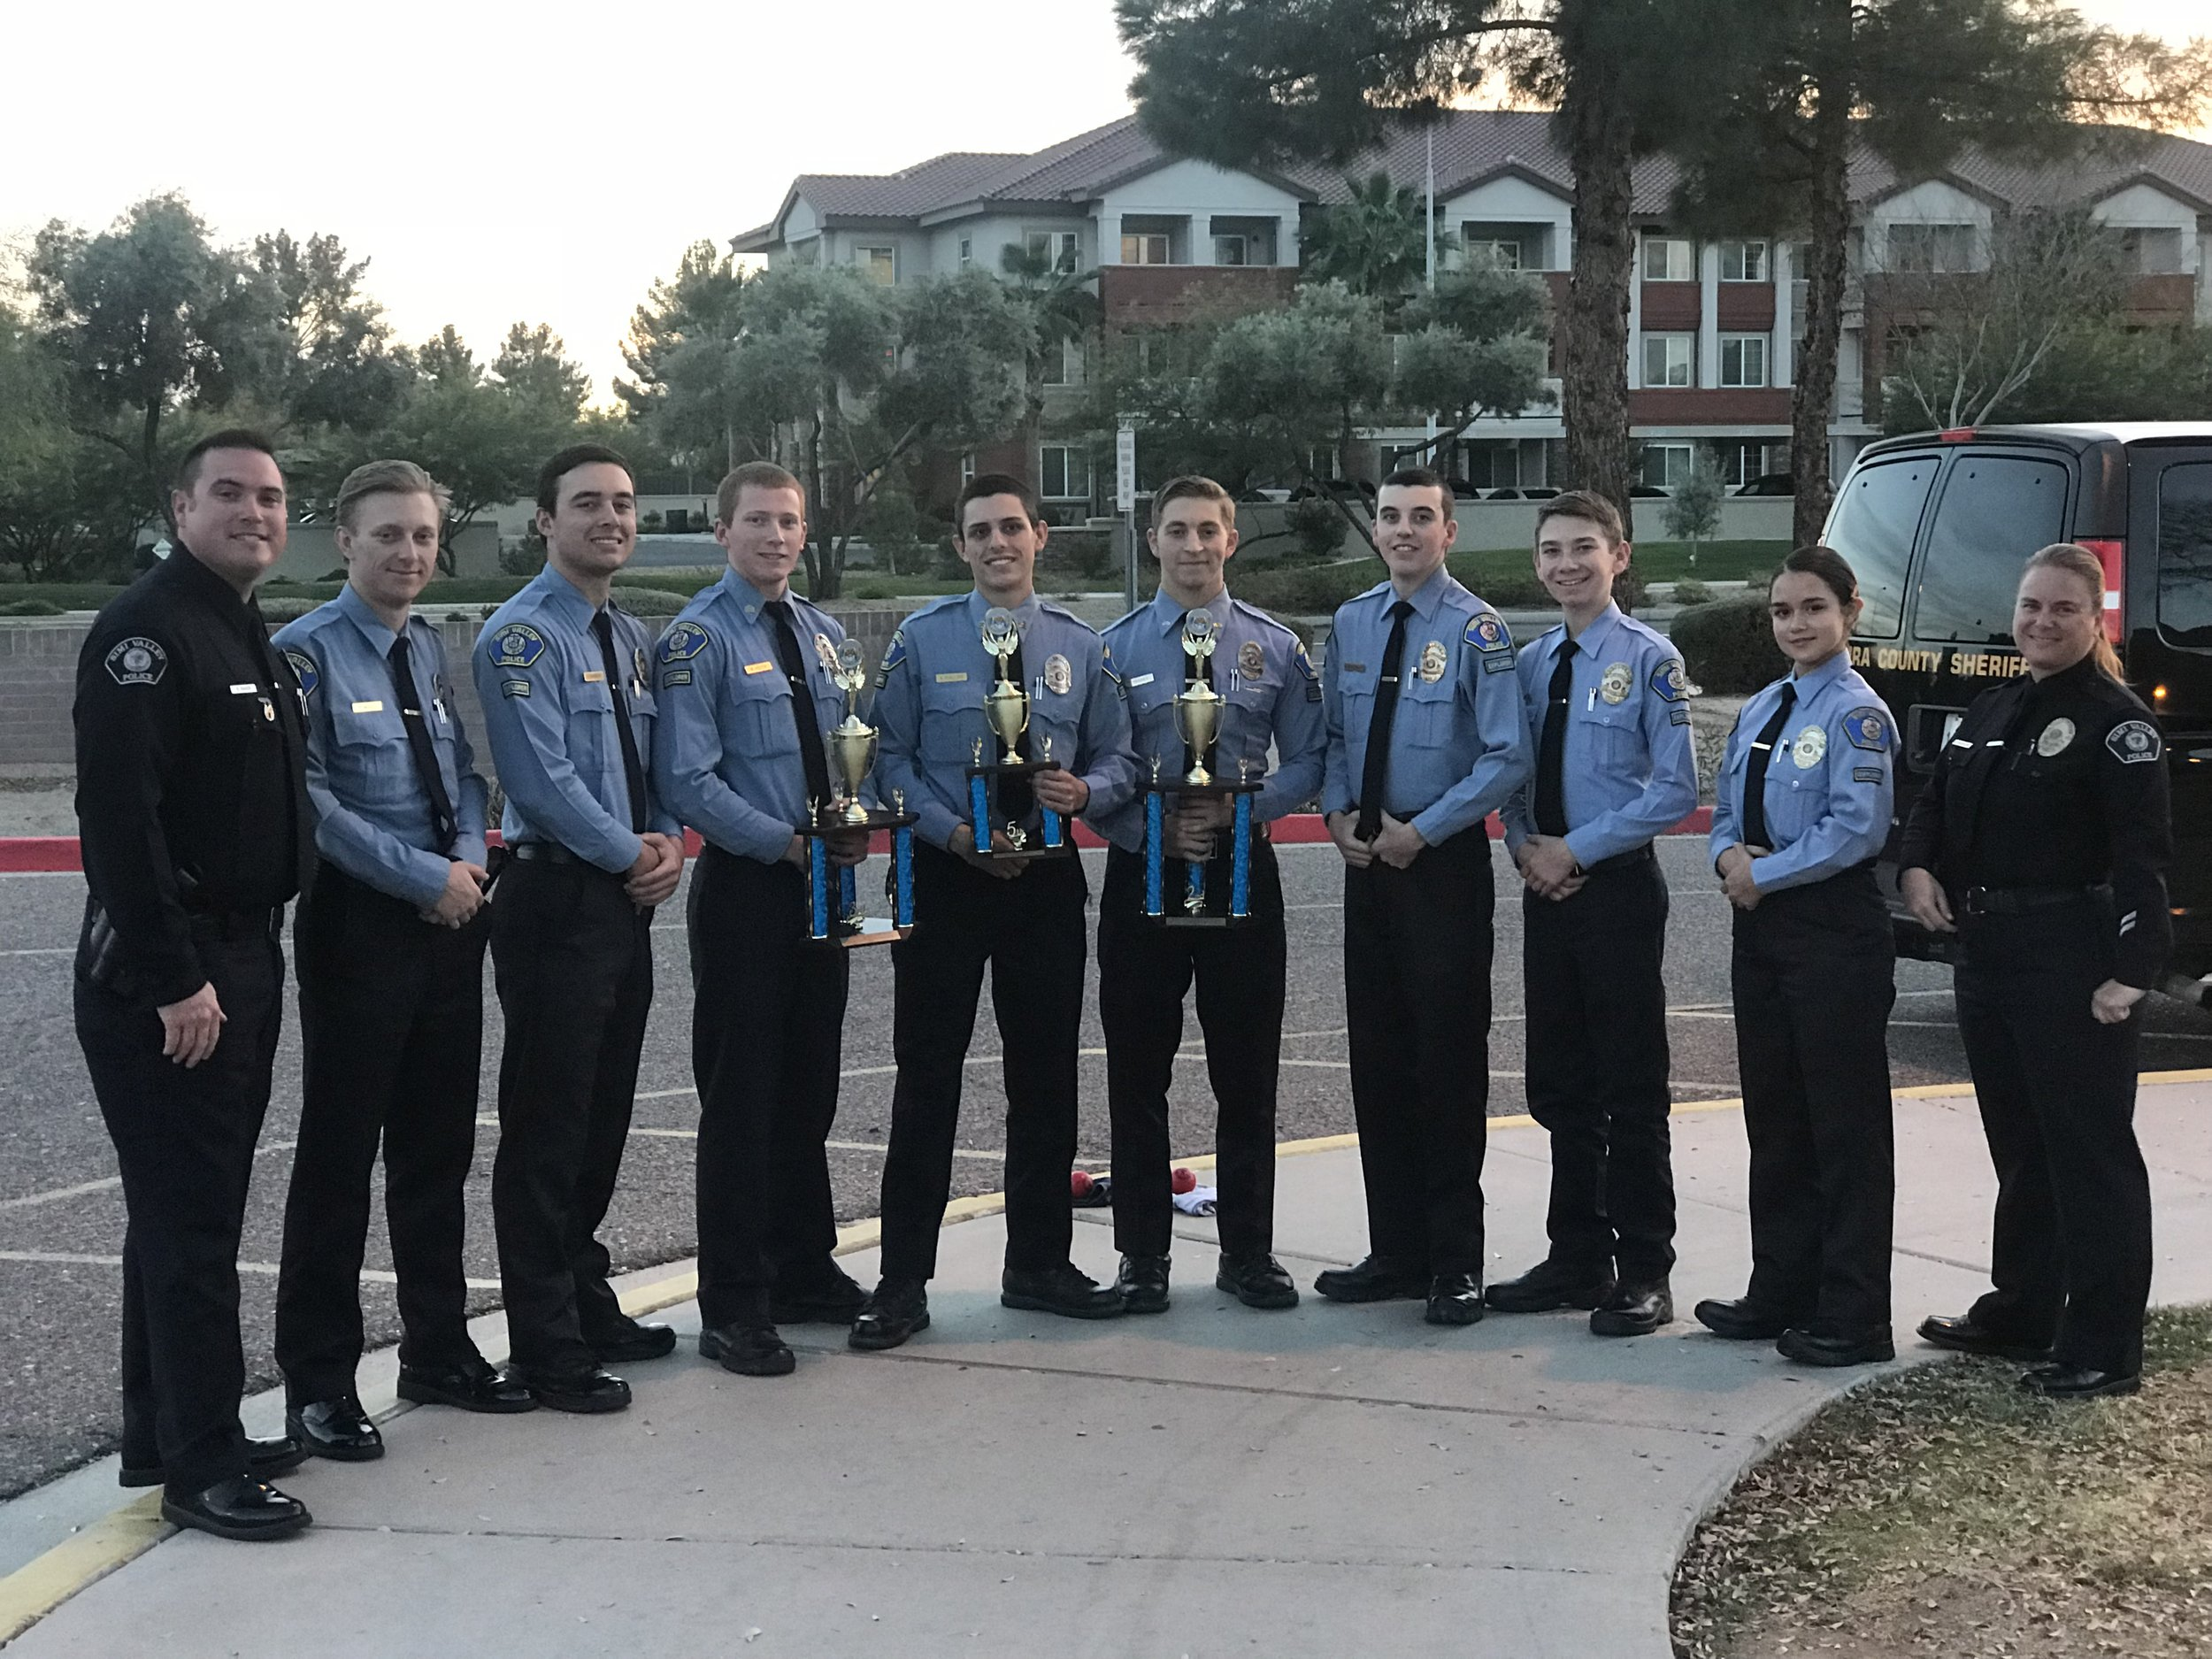 Chandler Explorer Competition